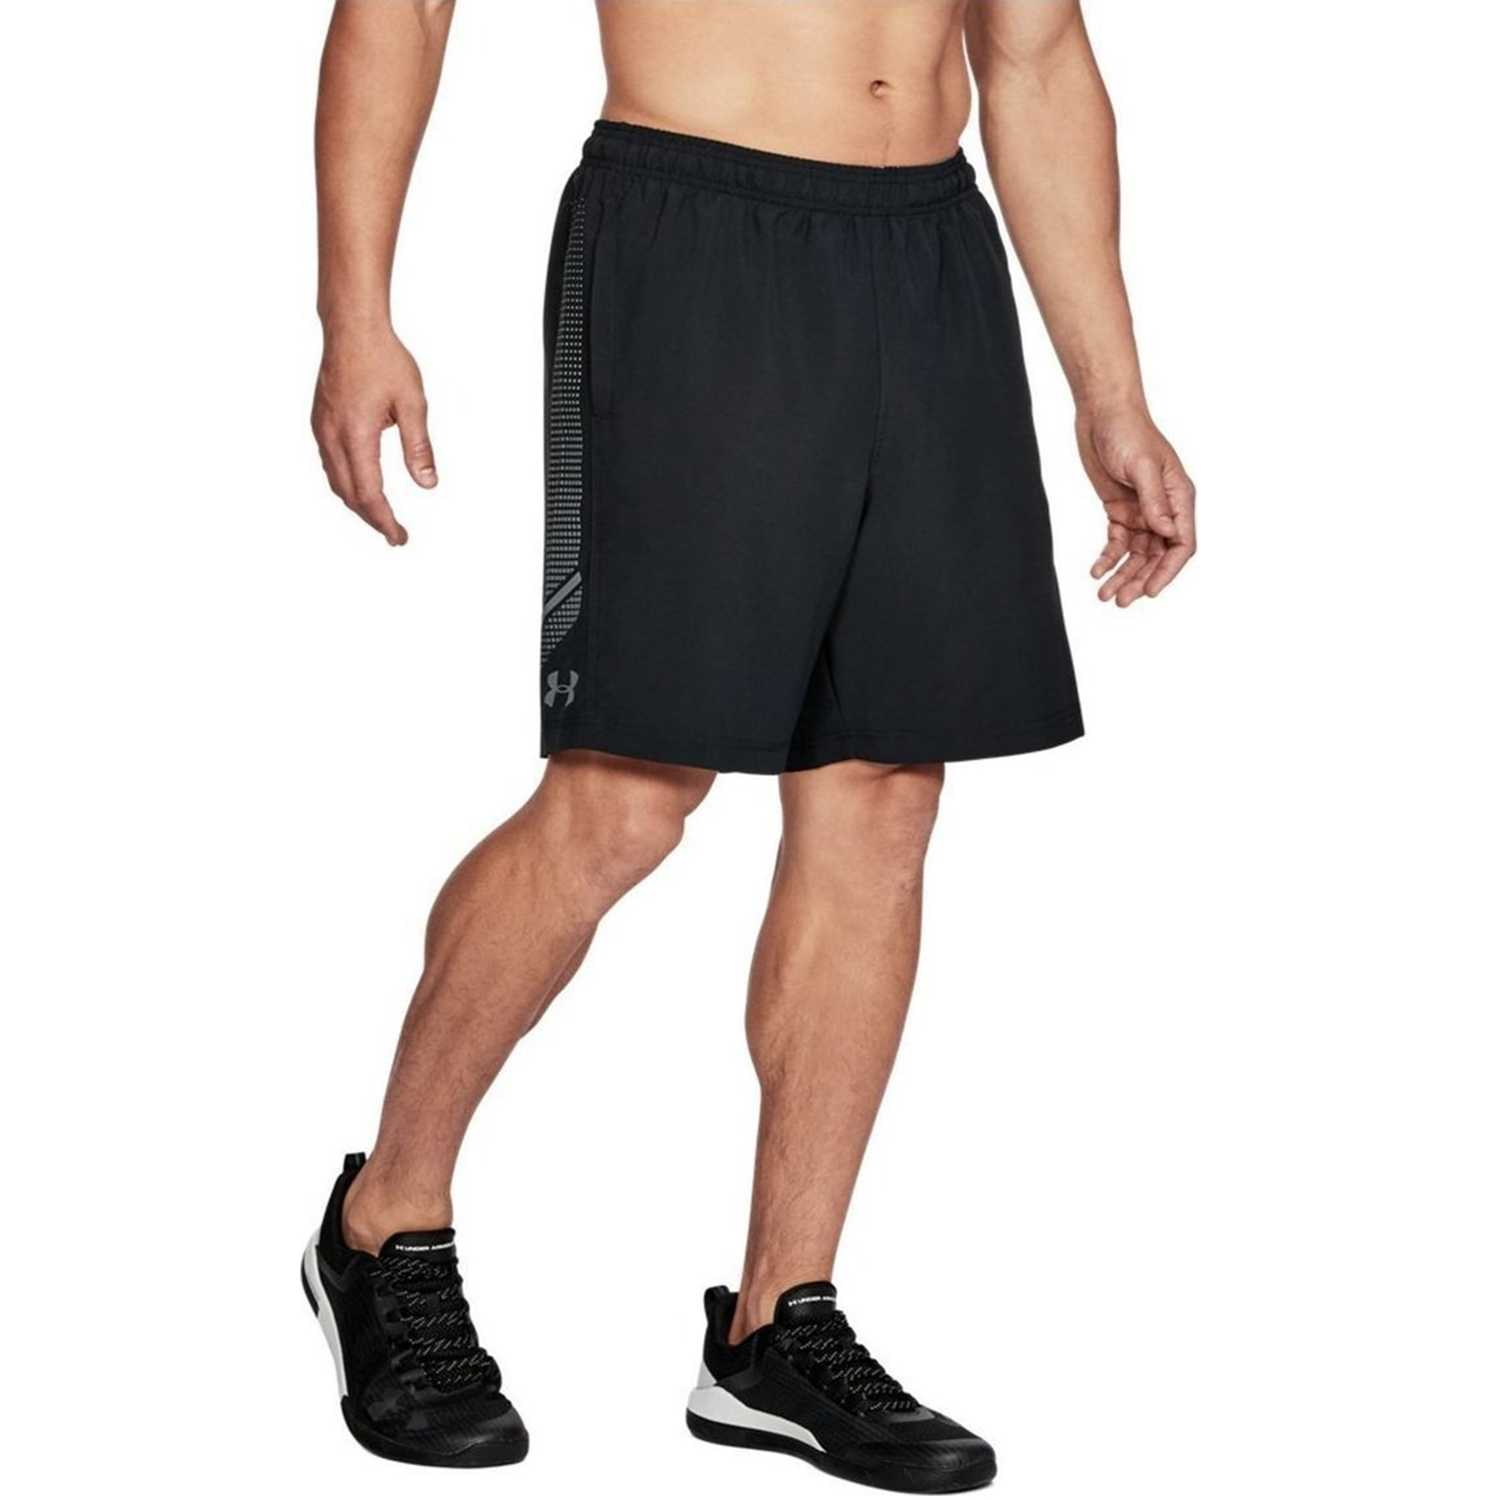 Short de Hombre Under Armour Negro woven graphic short-blk